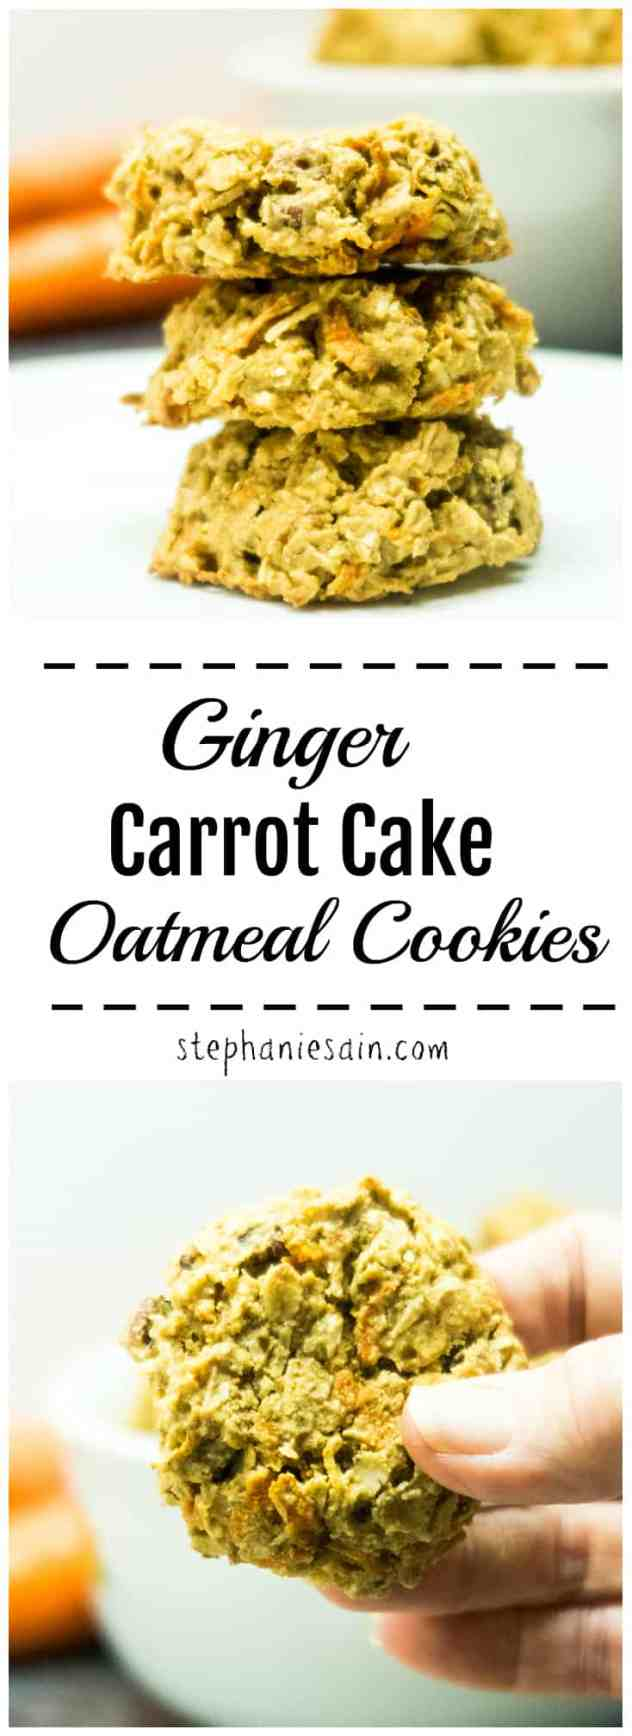 Ginger Carrot Cake Oatmeal Cookies are tasty little cookies with the flavors of carrot cake. Great for a healthy breakfast or quick snack. No Added refined sugars, Gluten Free, & Vegan option.